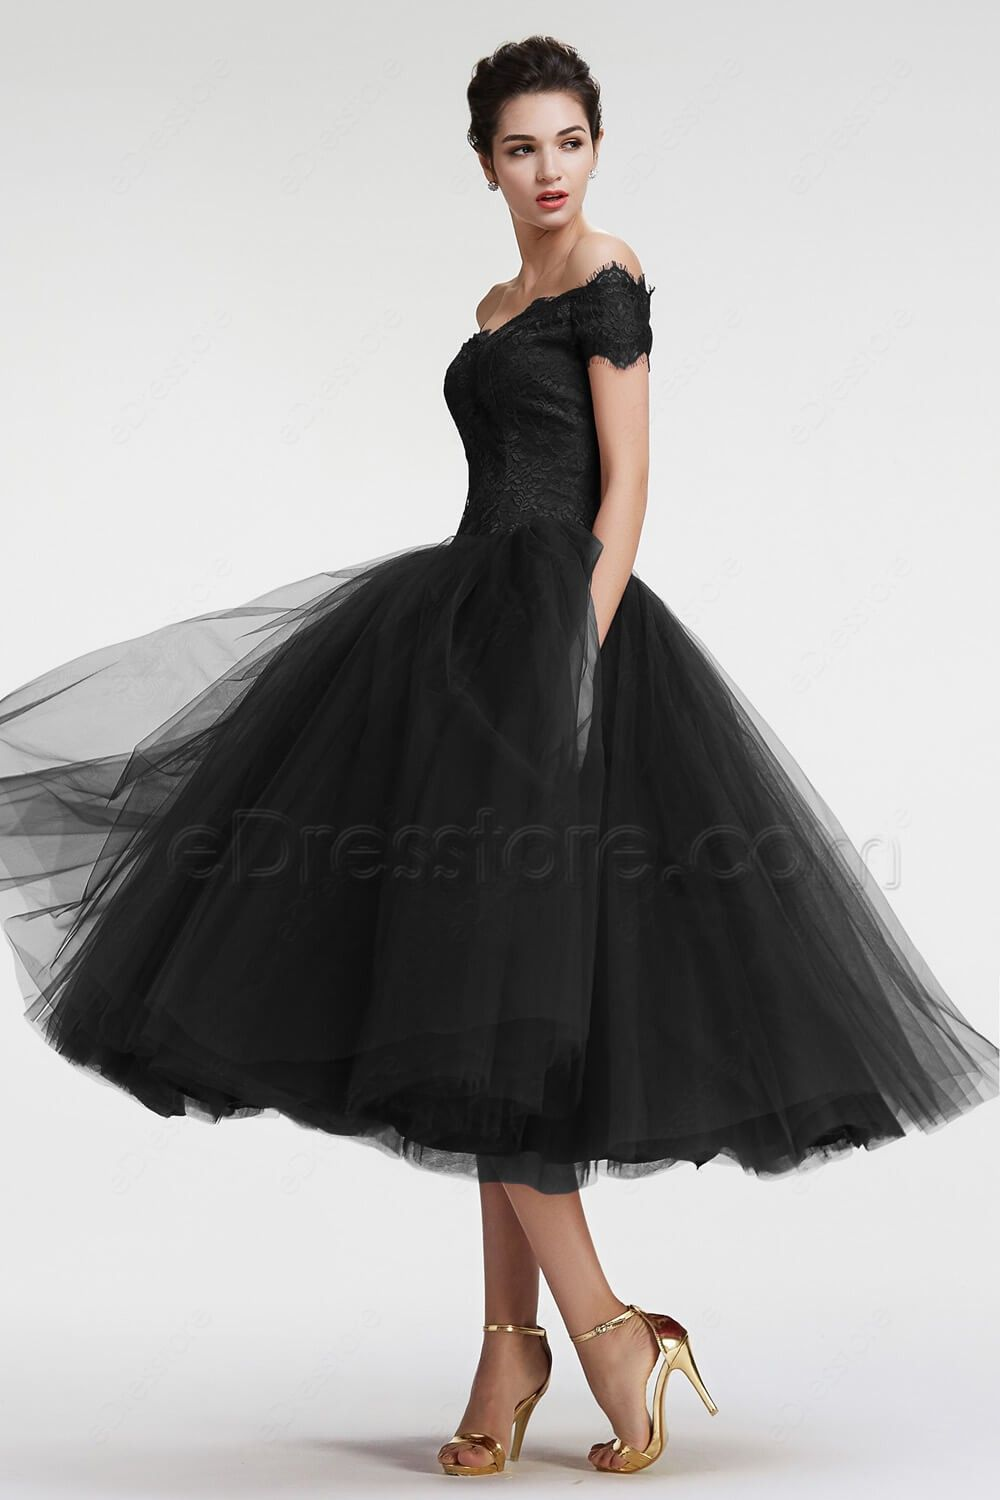 ac605a7f0af9 The black homecoming dress features off the shoulder neckline with  scallops